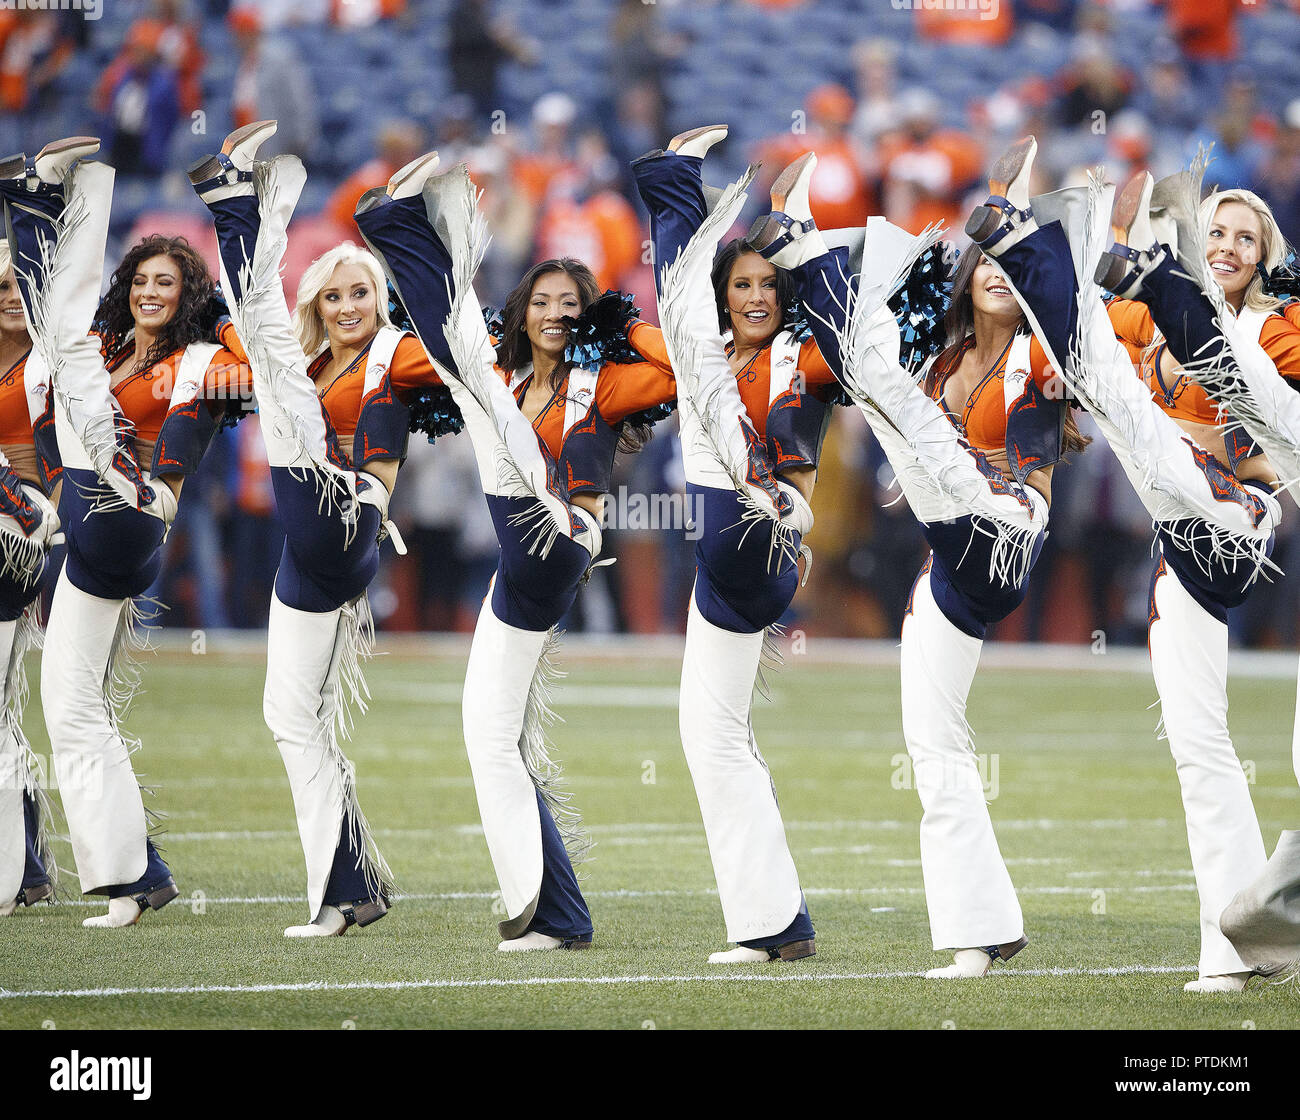 Chiefs Broncos Stock Photos & Chiefs Broncos Stock Images